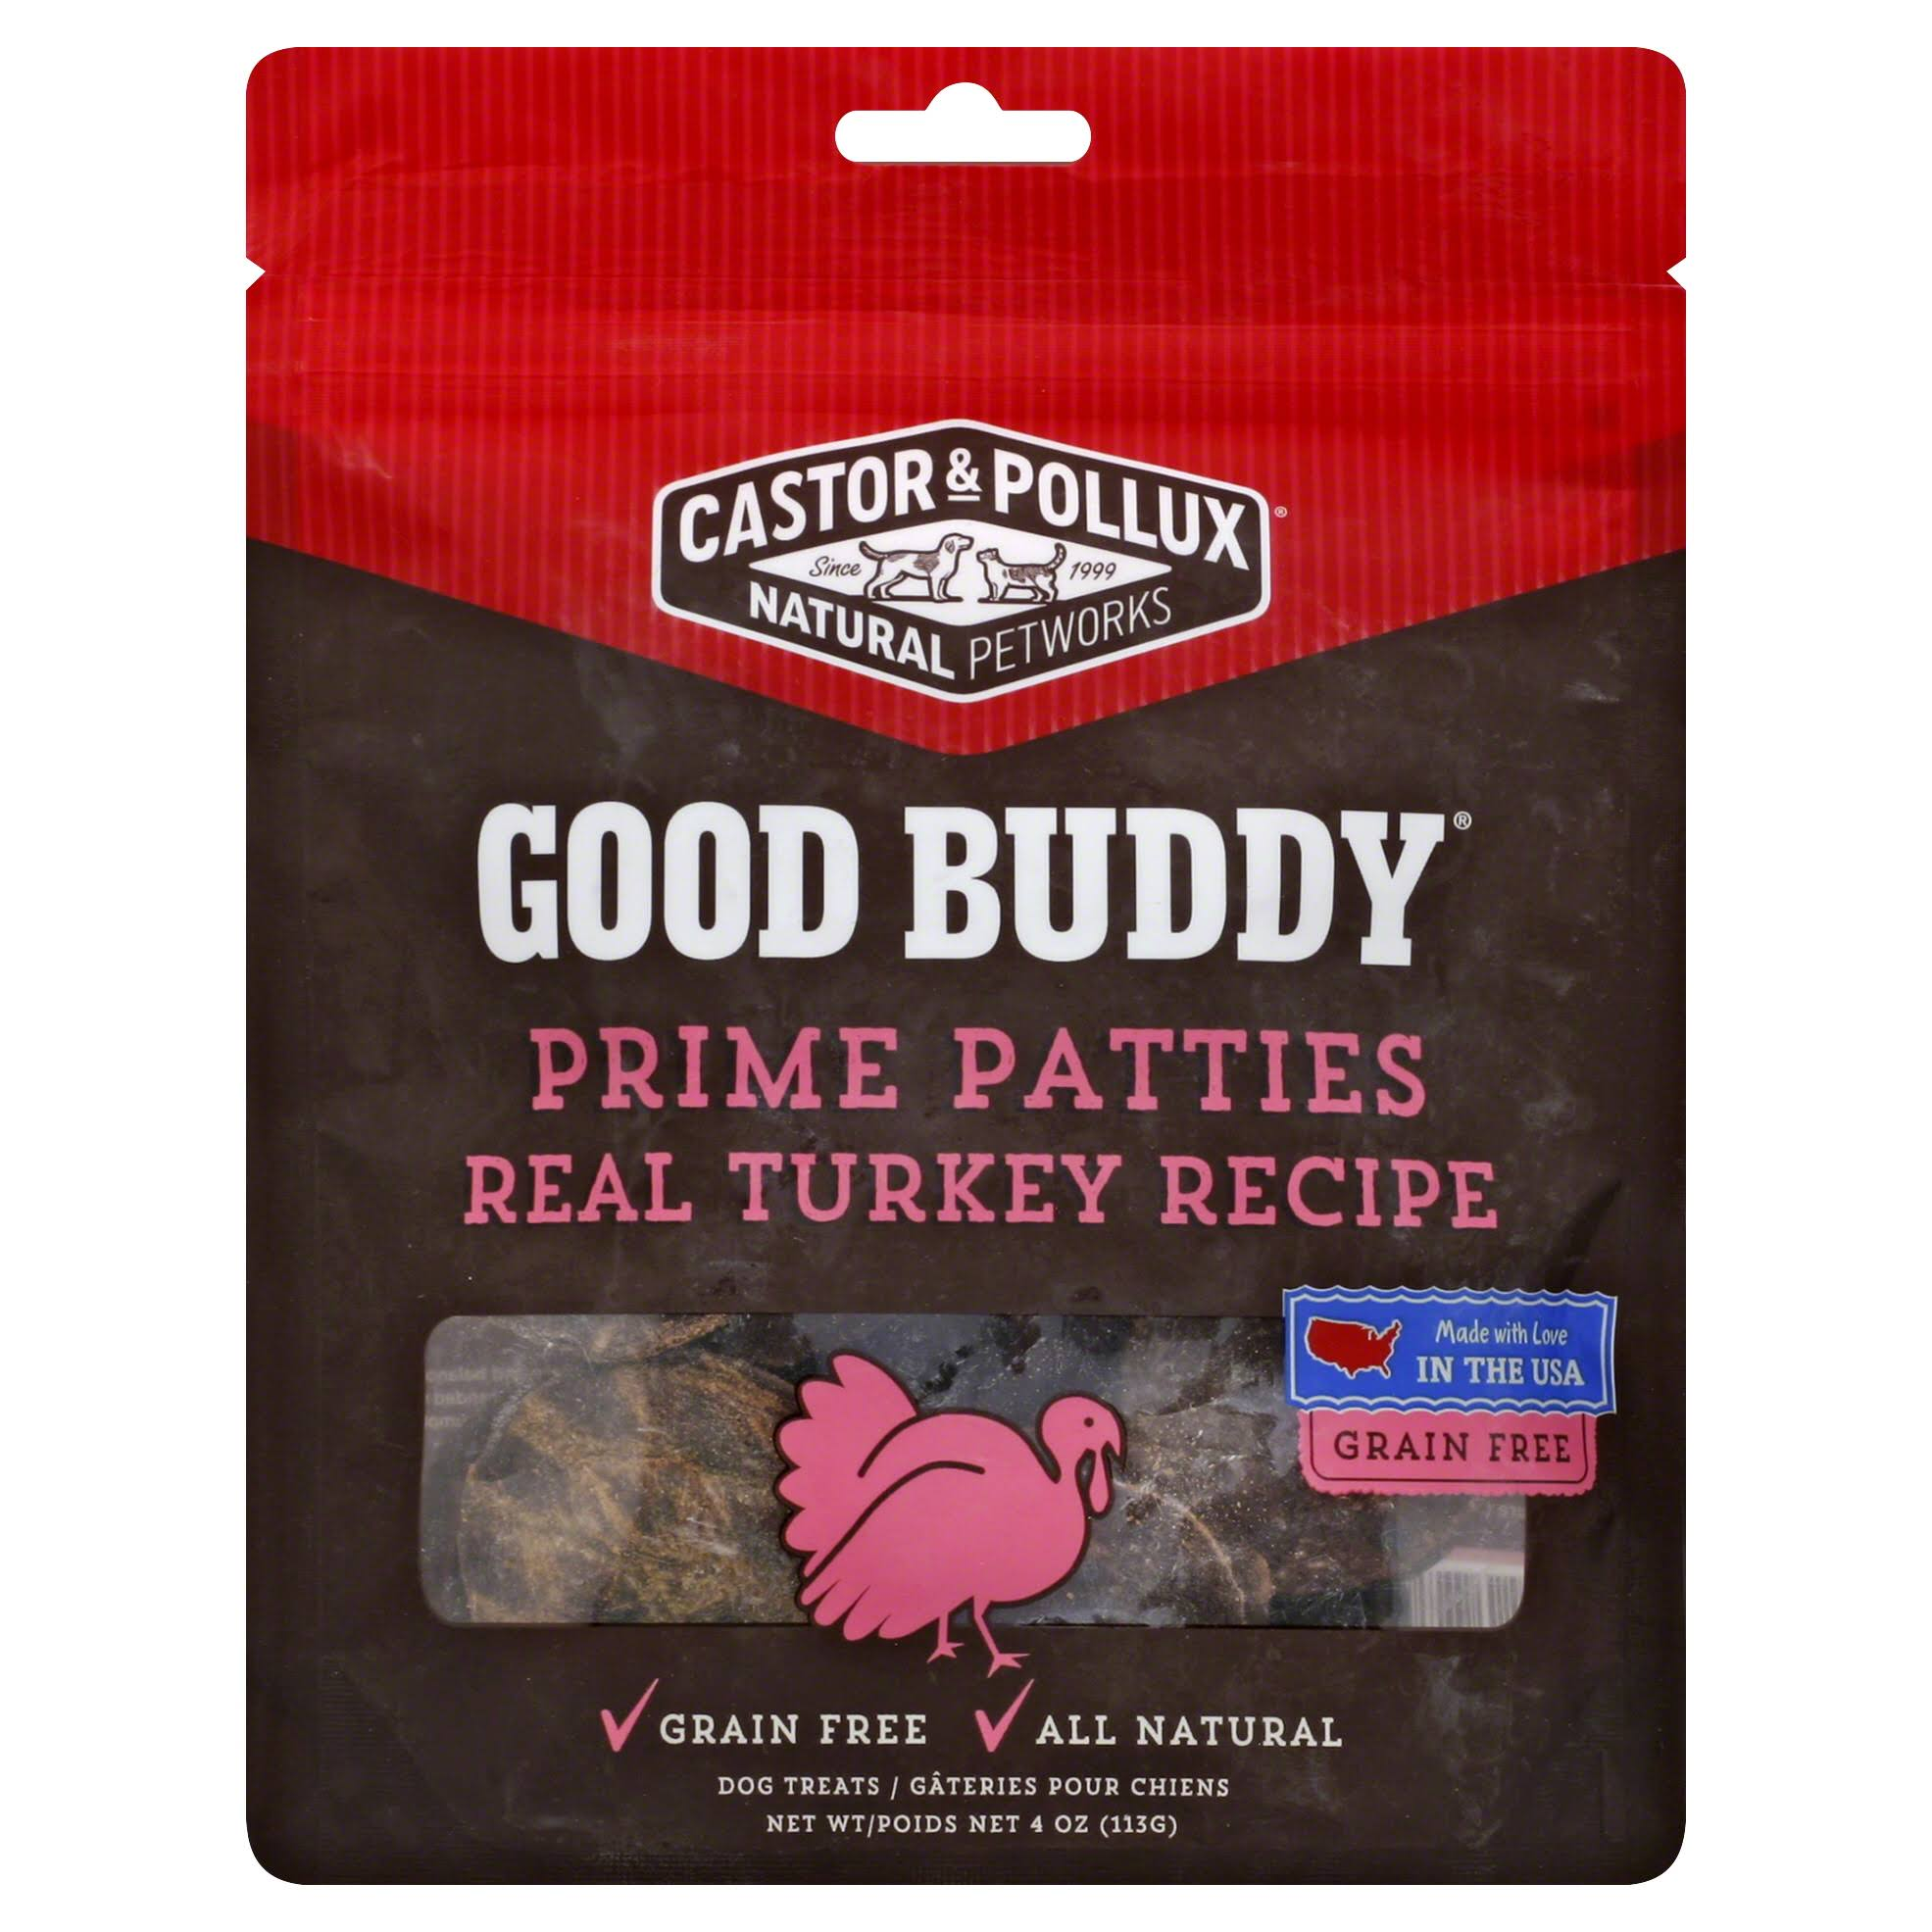 Castor and Pollux Good Buddy Prime Patties Dog Treats - Real Turkey Recipe, 4oz